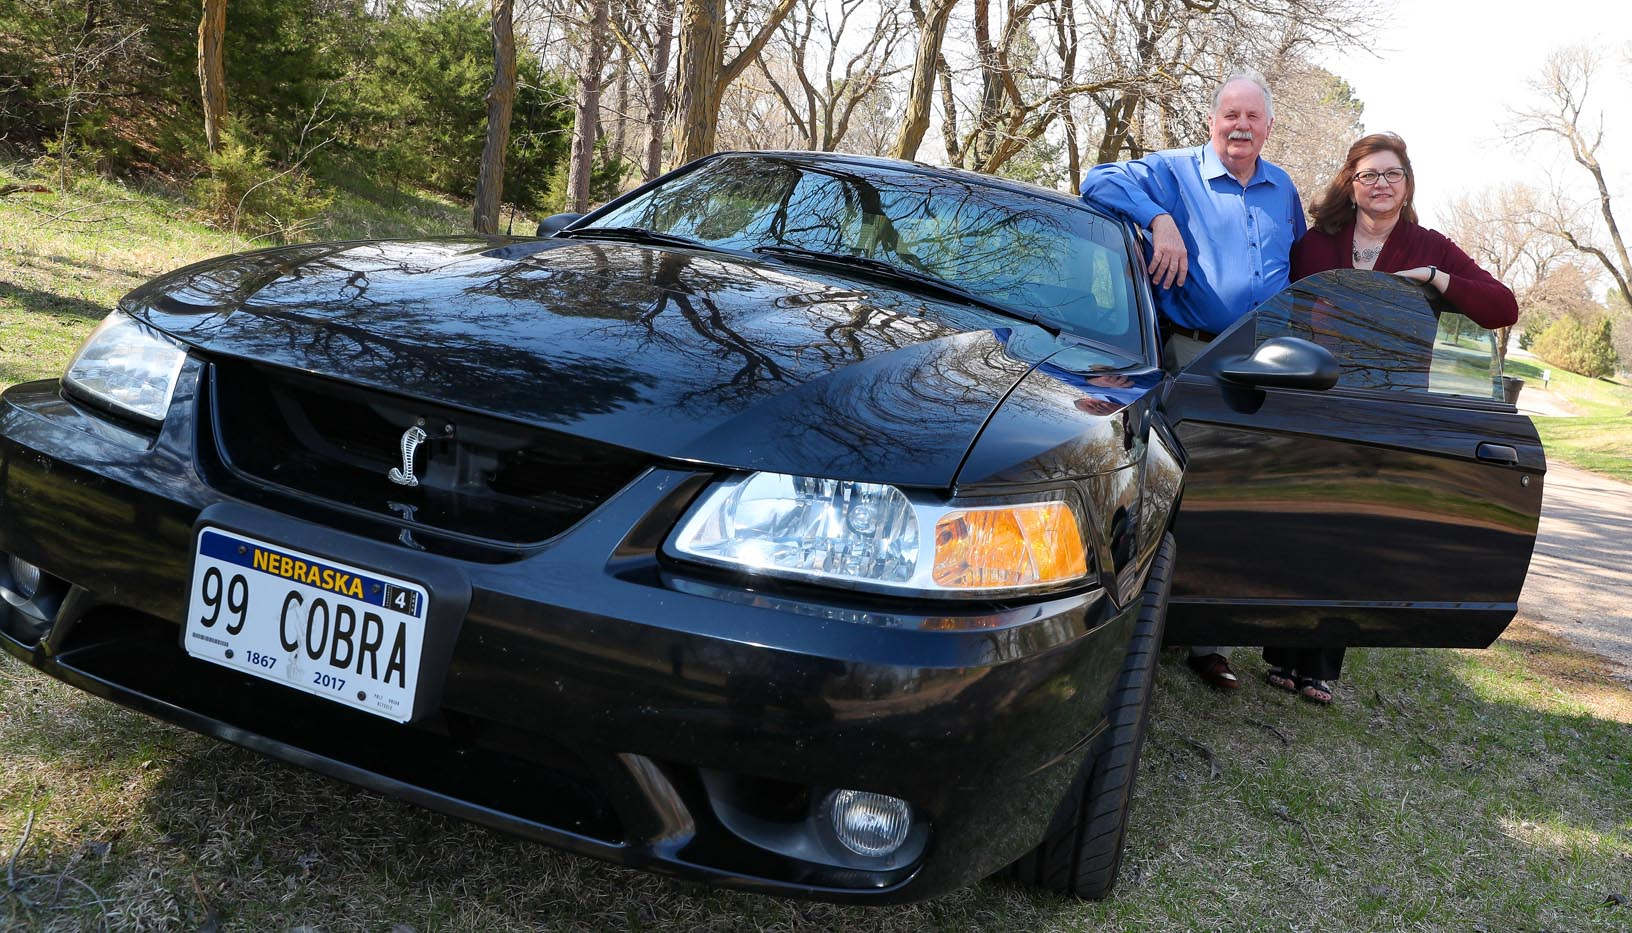 Cyndi Schroeder and her husband, Larry, own a 1999 Ford Mustang Cobra. The couple enjoys traveling to car shows across the United States, visiting areas they've never seen. (Photo by Corbey R. Dorsey, UNK Communications)